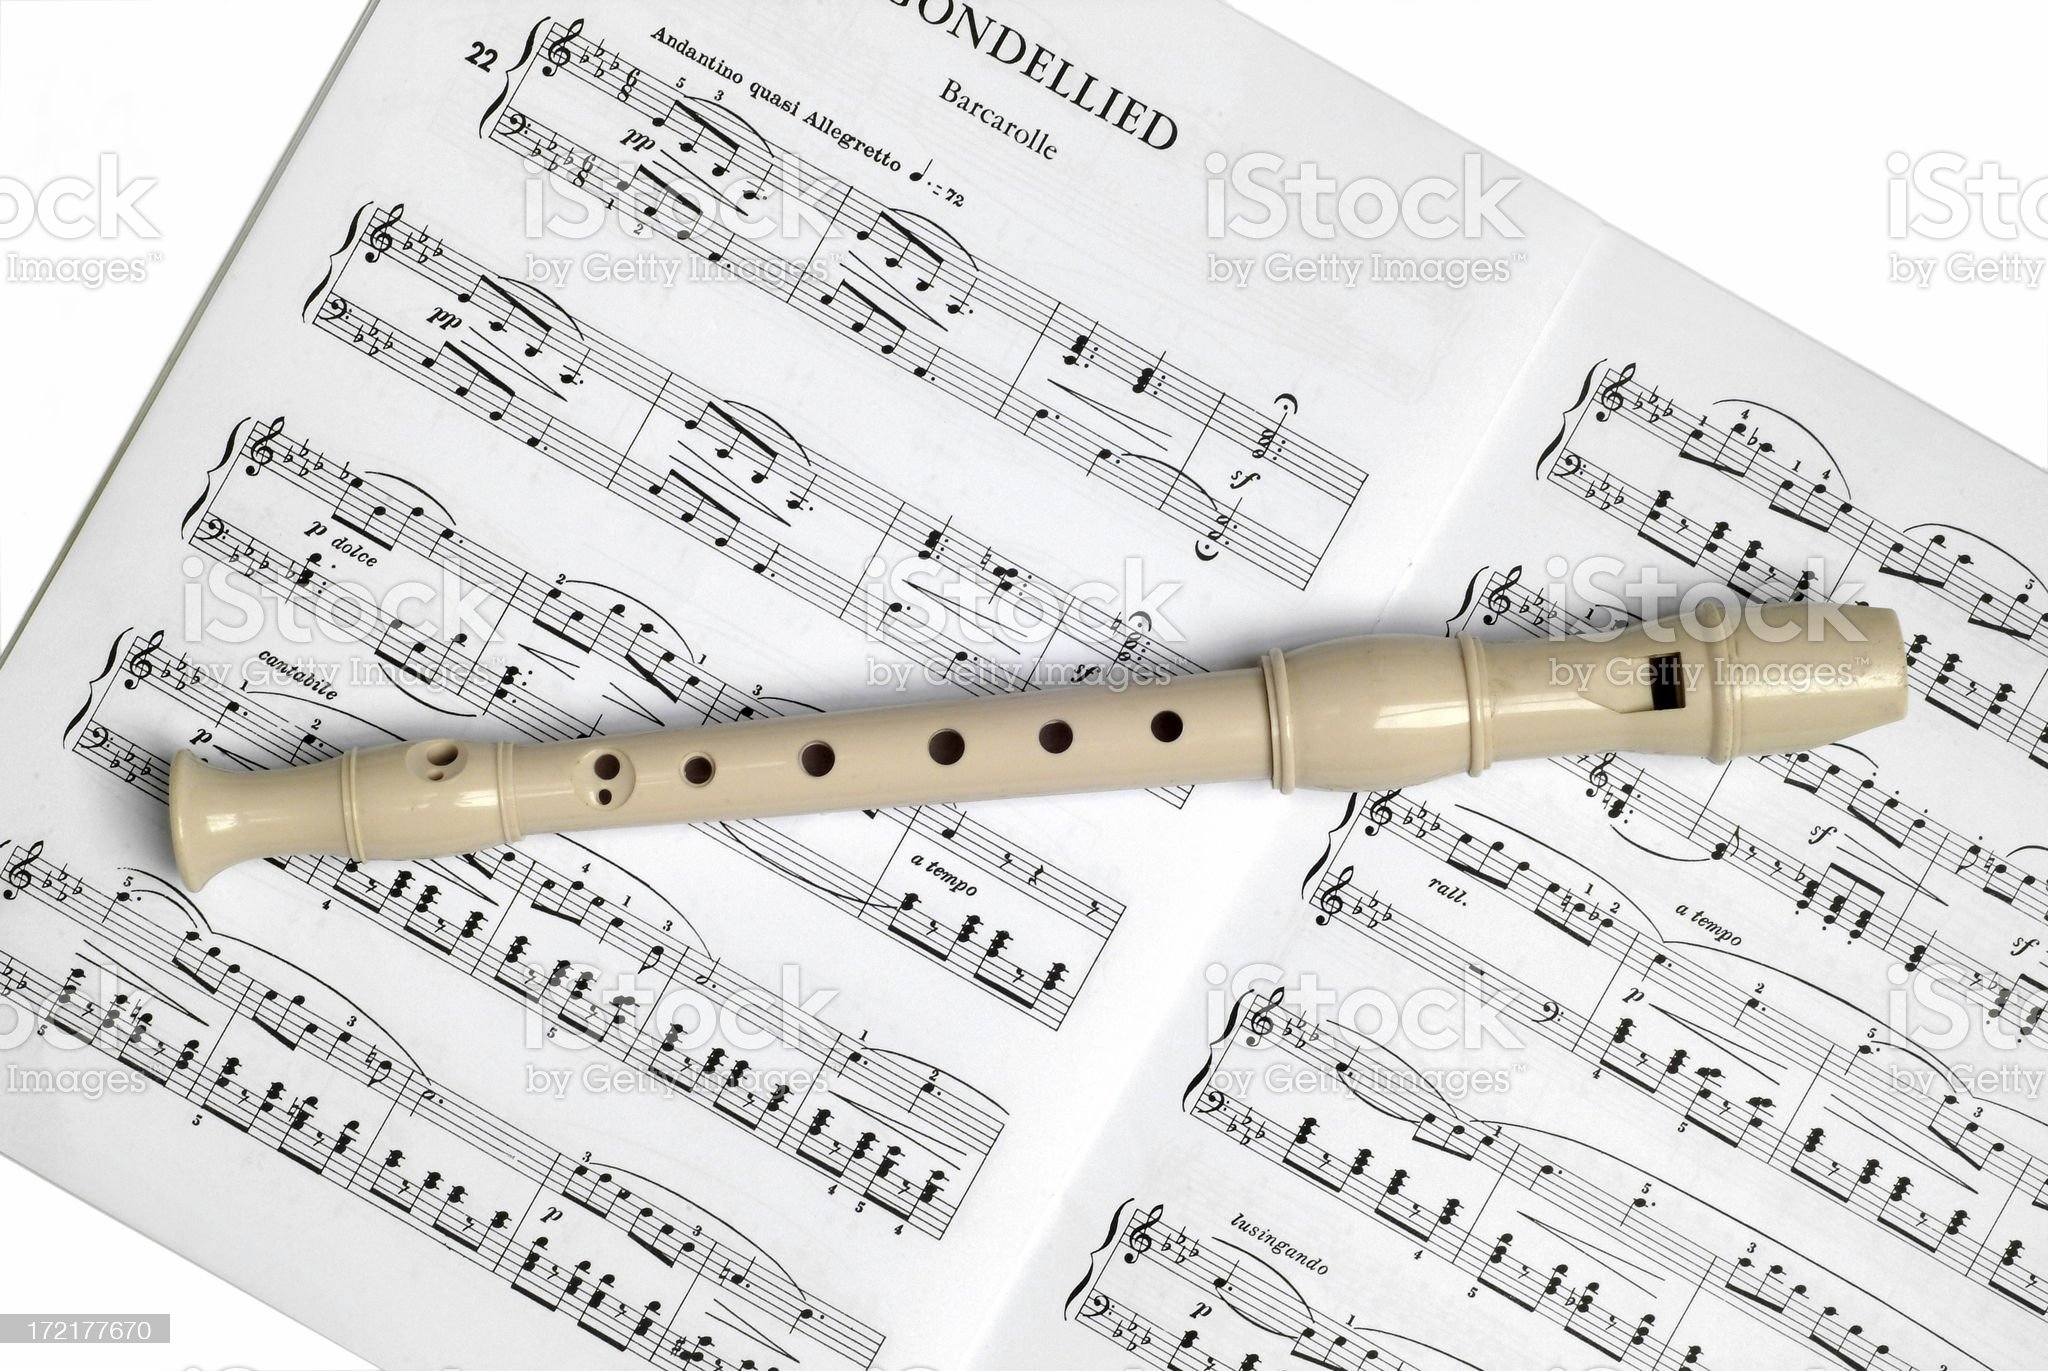 Recorder and sheet music on white royalty-free stock photo